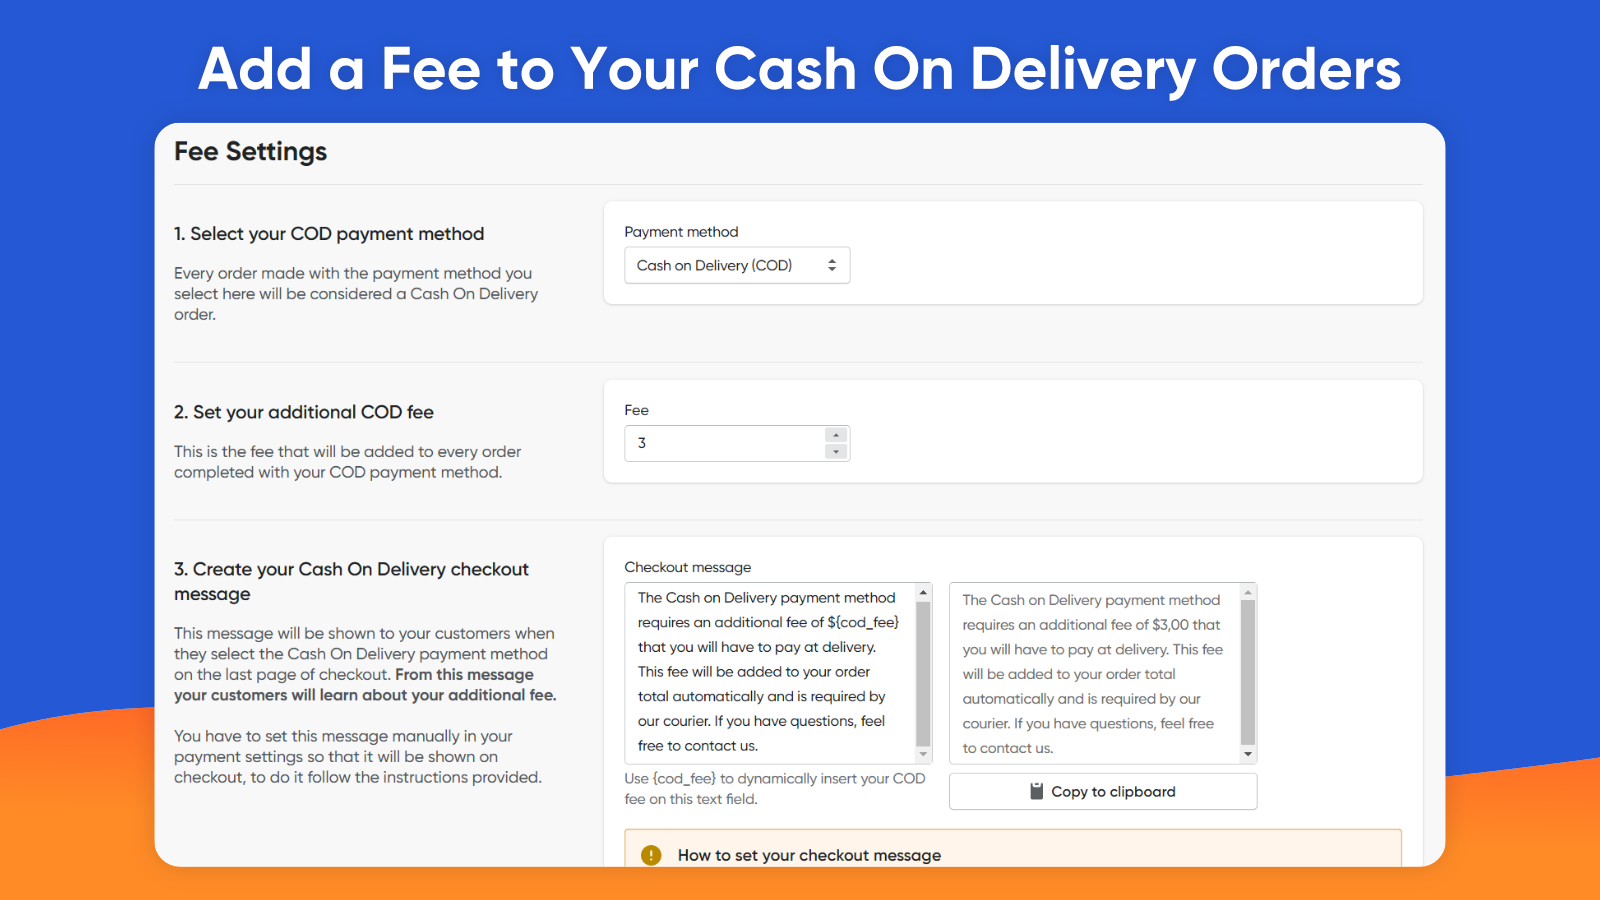 Add a Fee to Your Cash On Delivery Orders